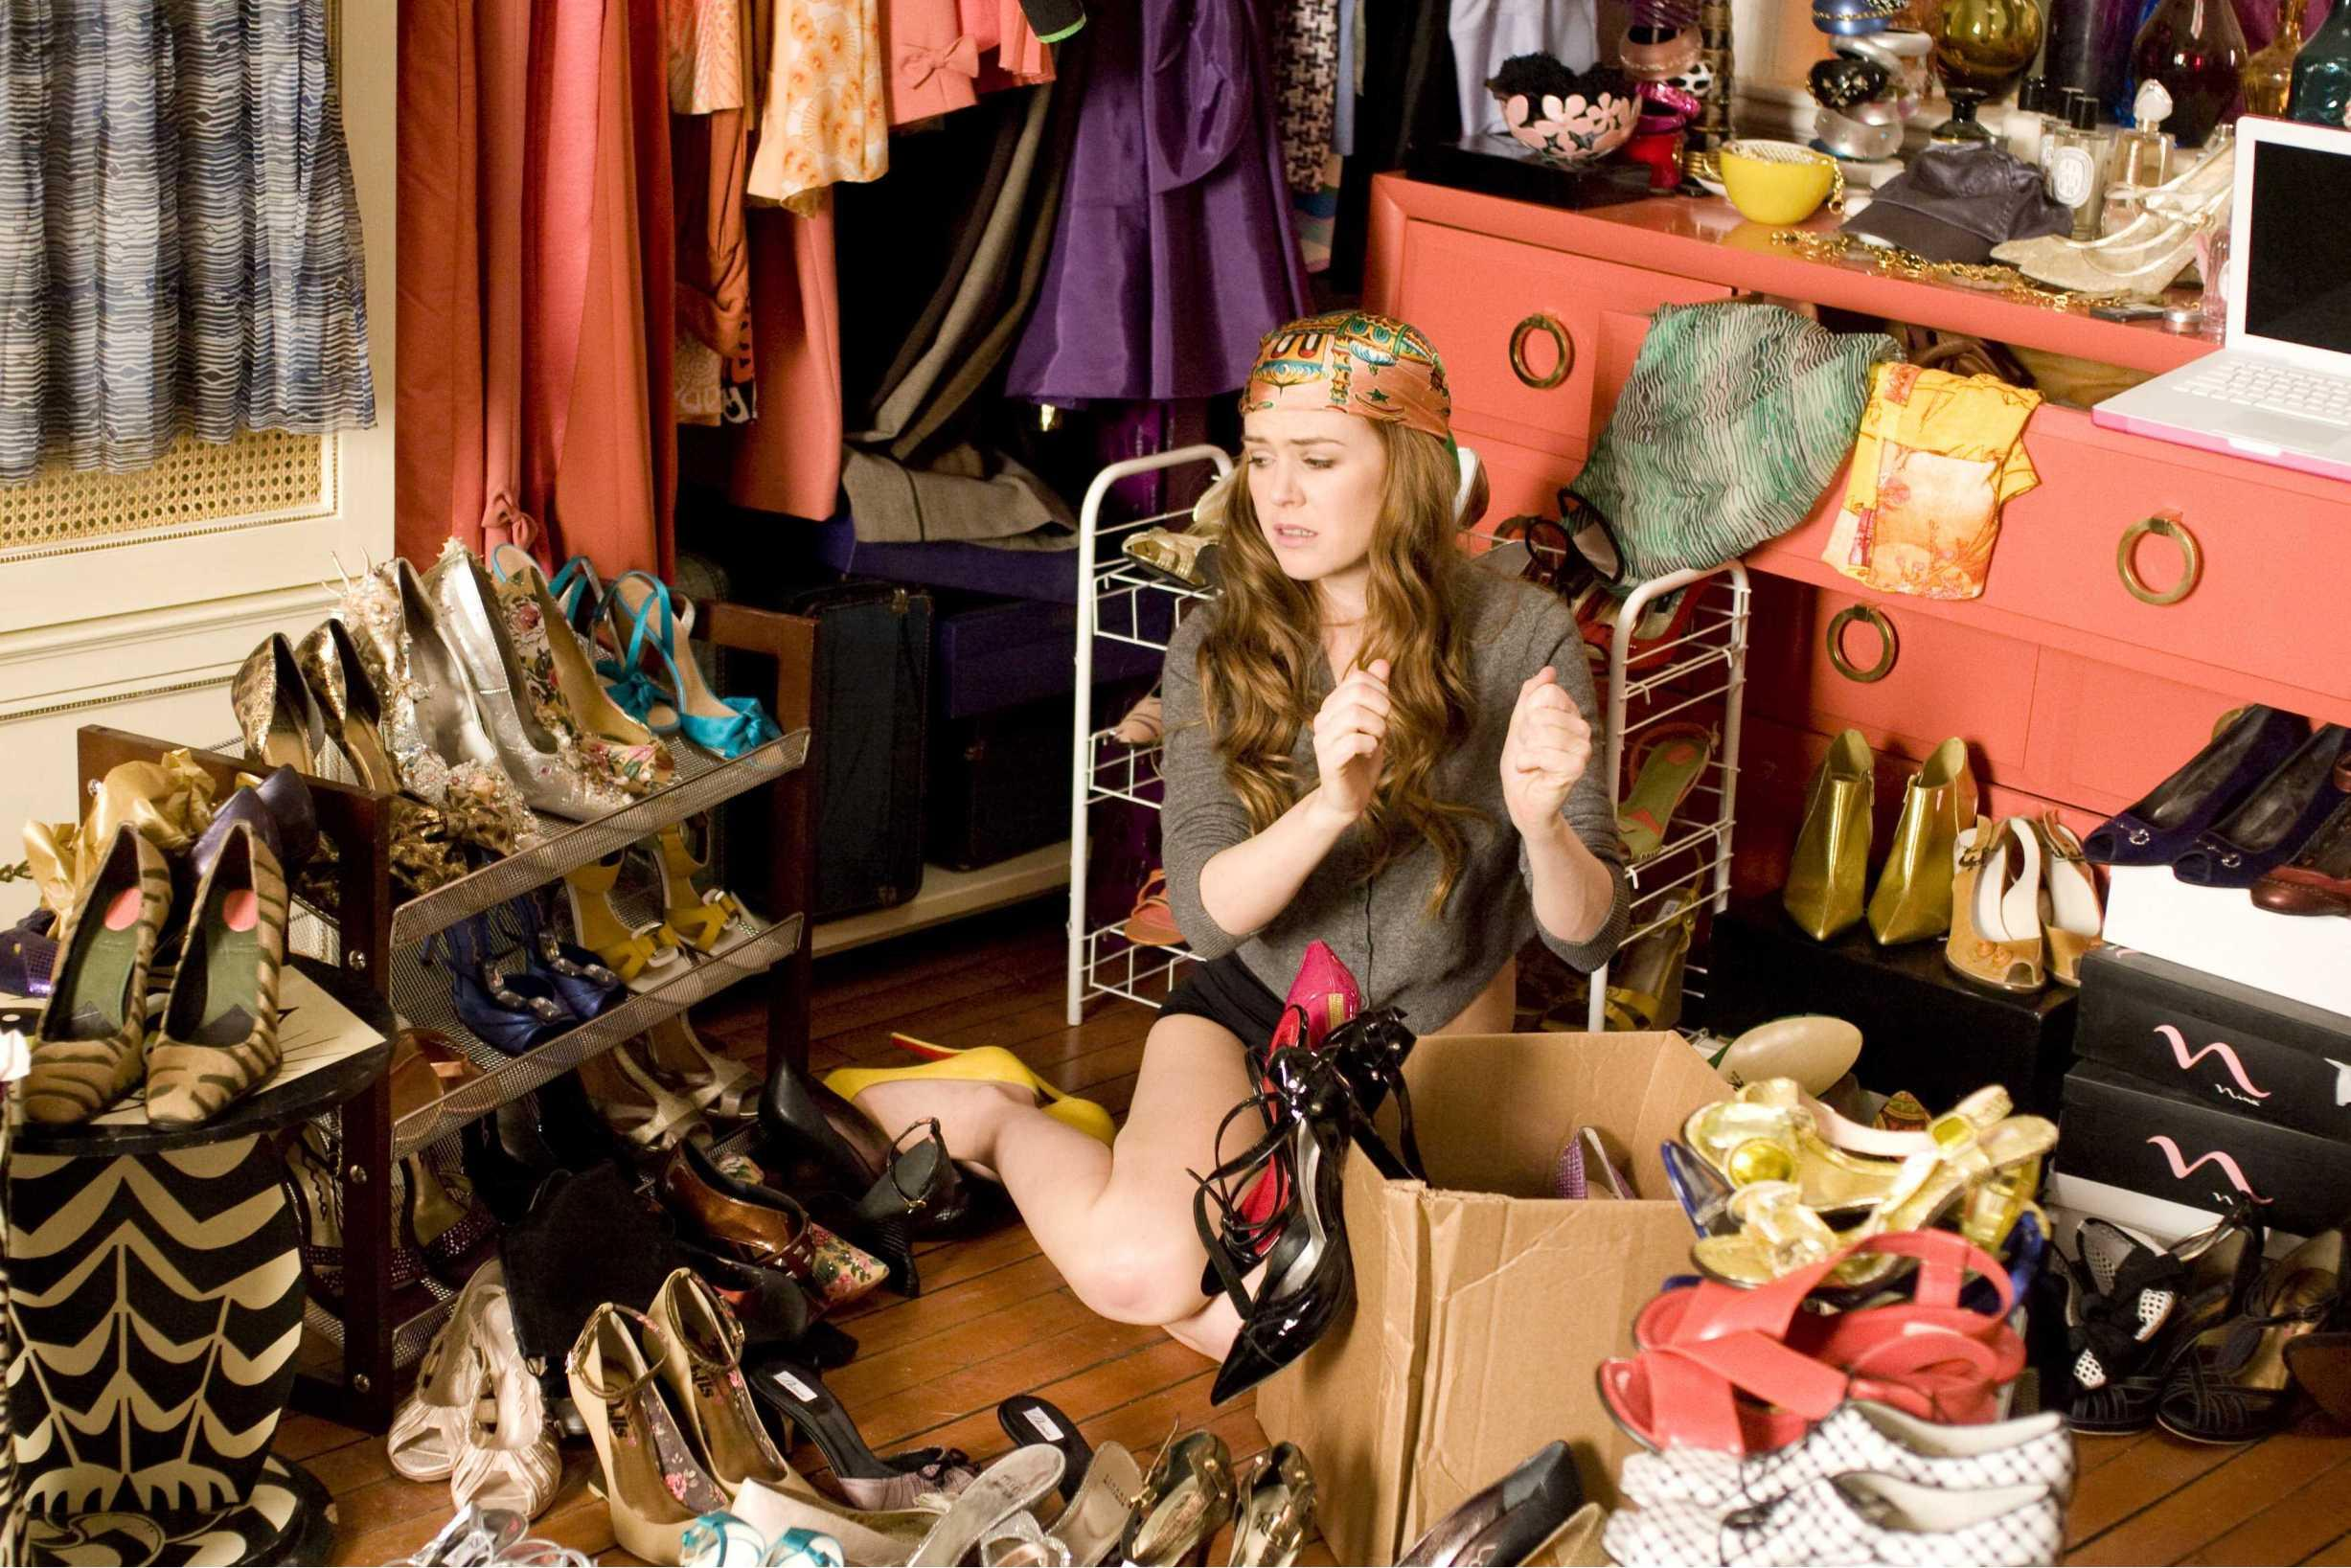 confessions of a shopaholic messy closet needs organizing